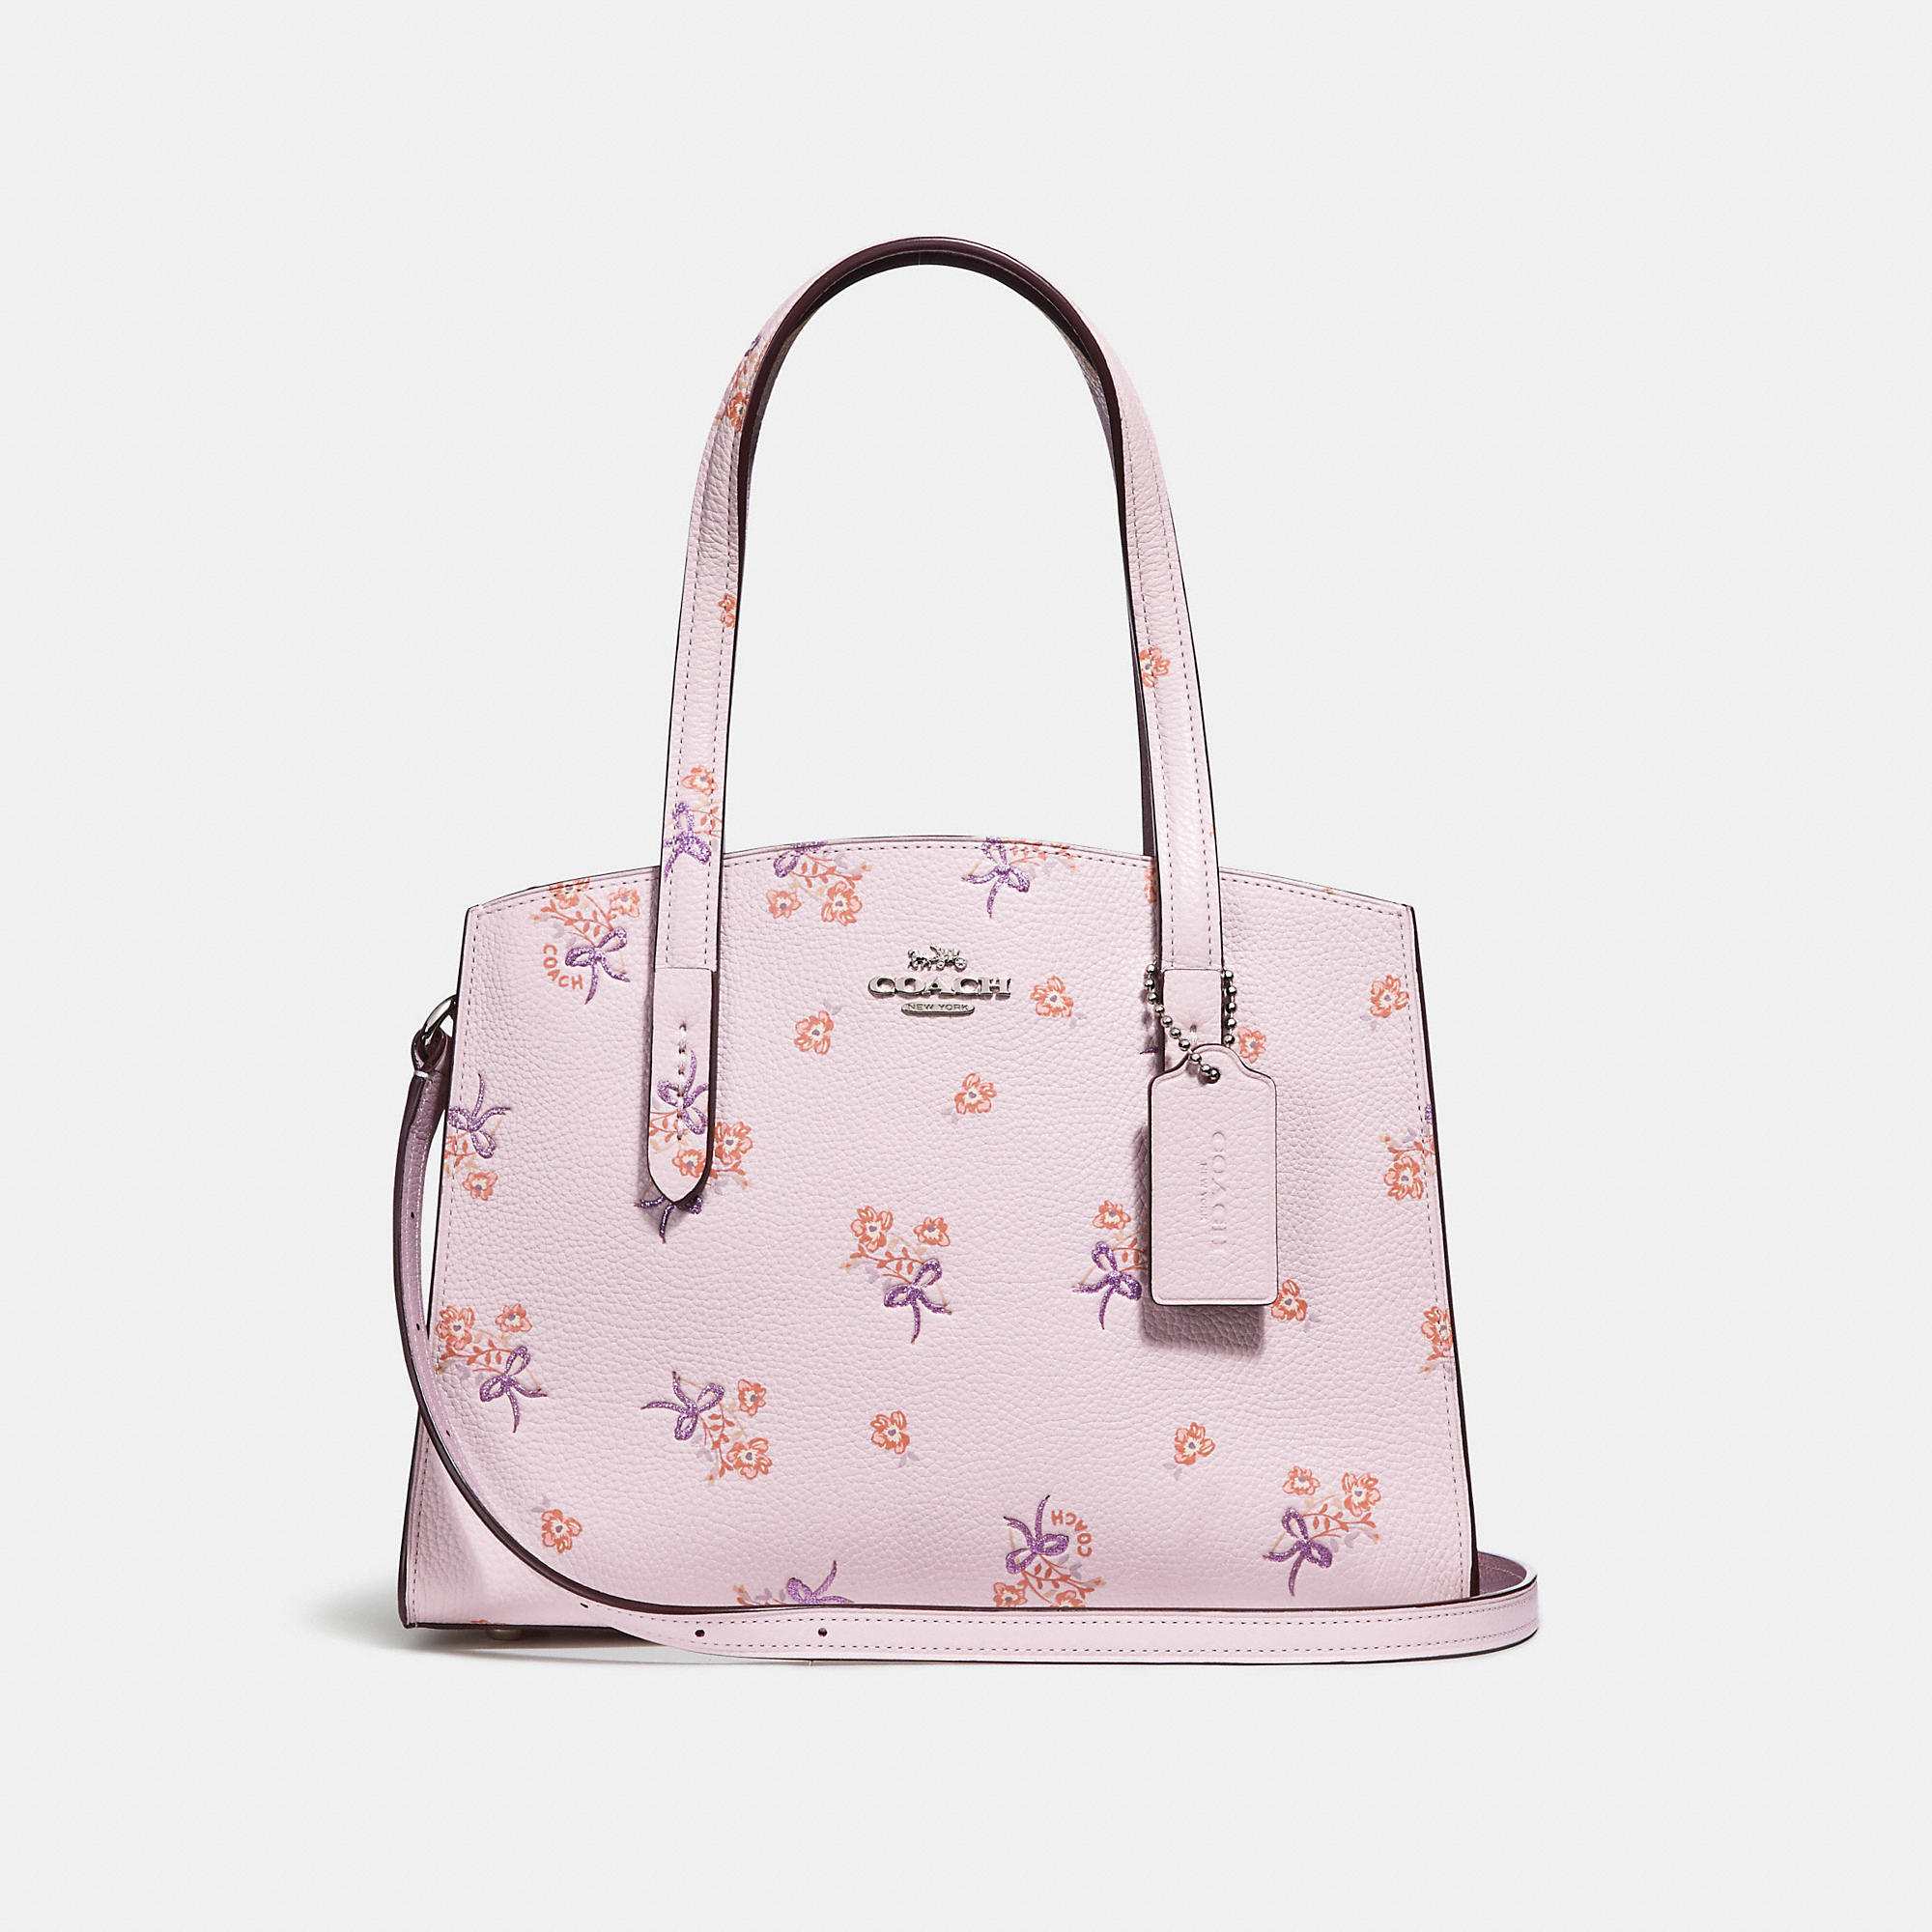 1c2264114823 COACH Charlie Carryall 28 With Floral Bow Print - Women s Designer Handbags